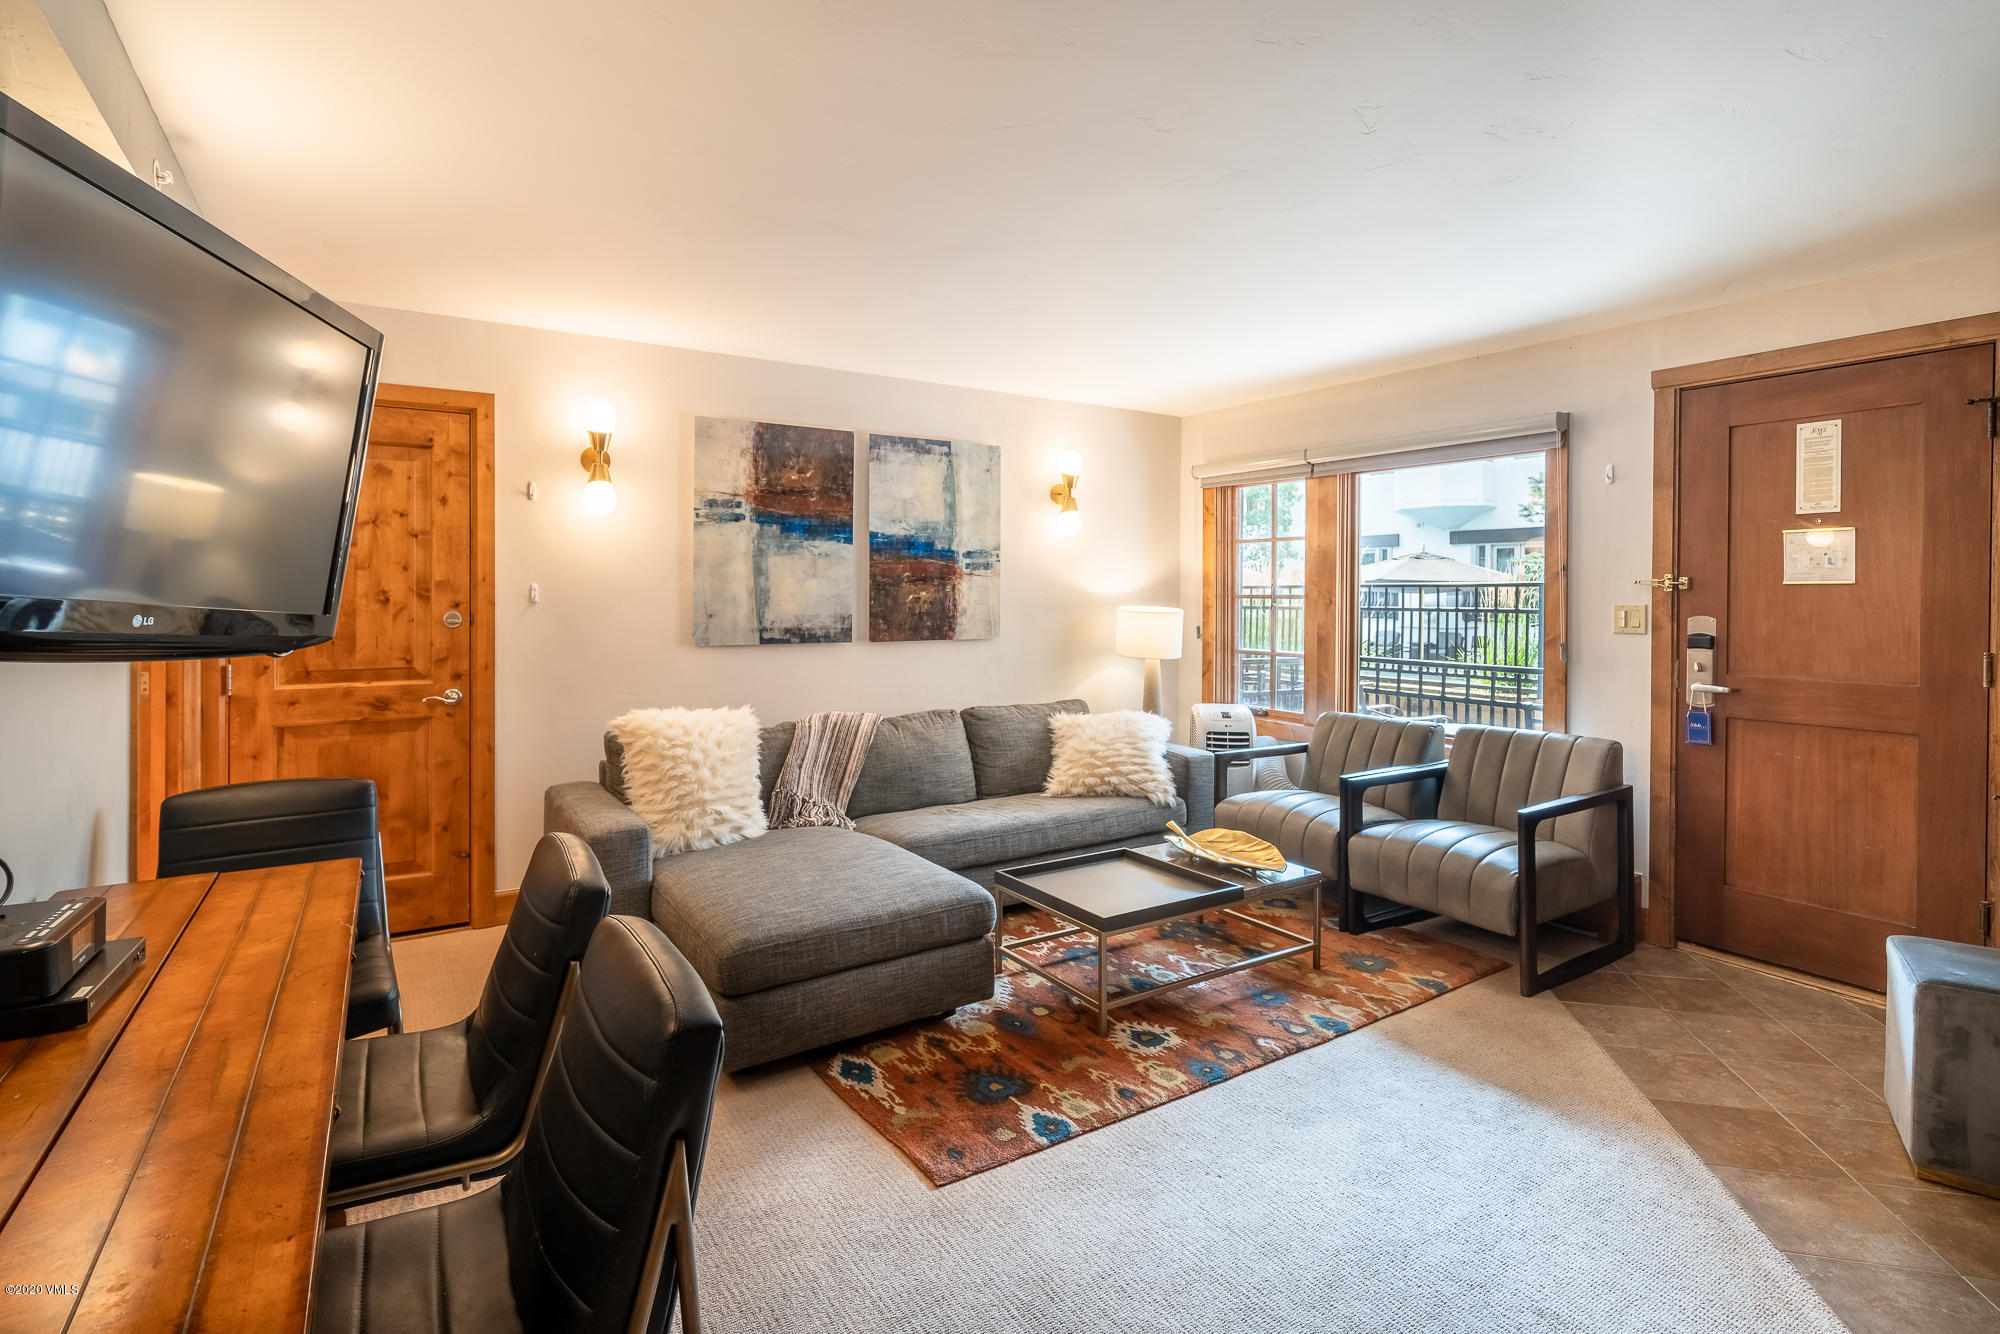 Located in the heart of Vail Village and just steps to Gondola One. This property has a fantastic rental history that comes with heated parking, ski lockers and all the wonderful amenities the Lodge at Vail has to offer.